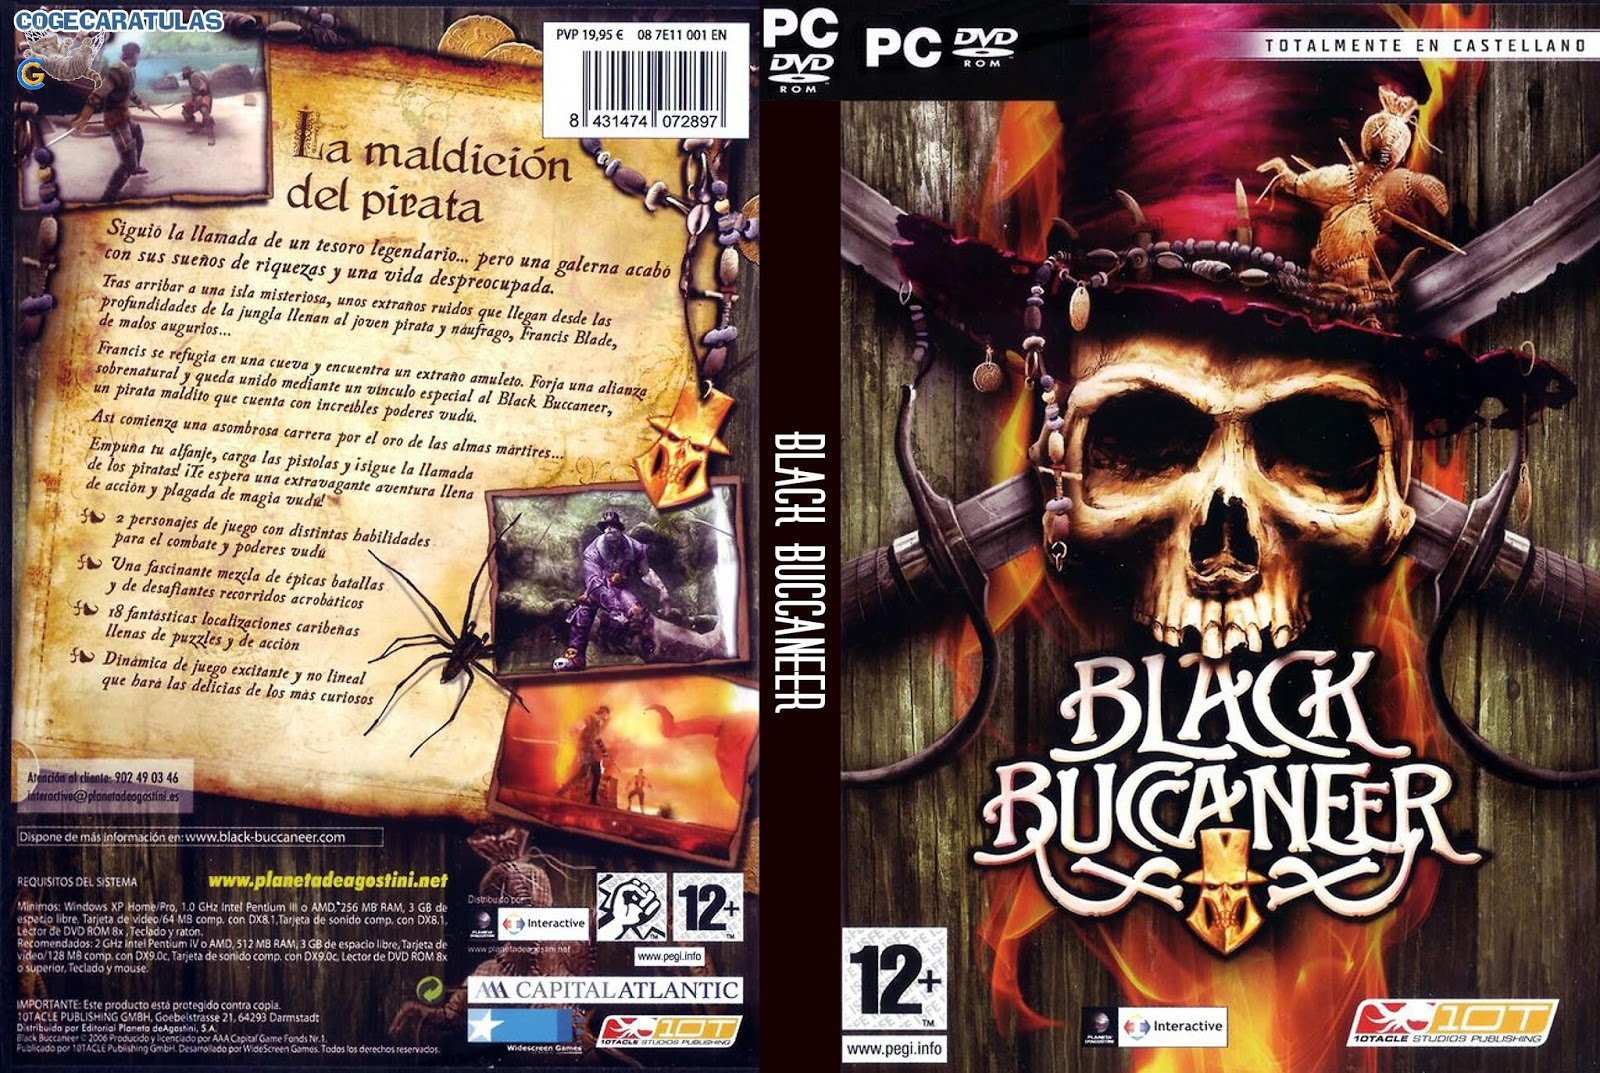 Download Game PC Ringan Black Buccaneer RIP | 120 MB